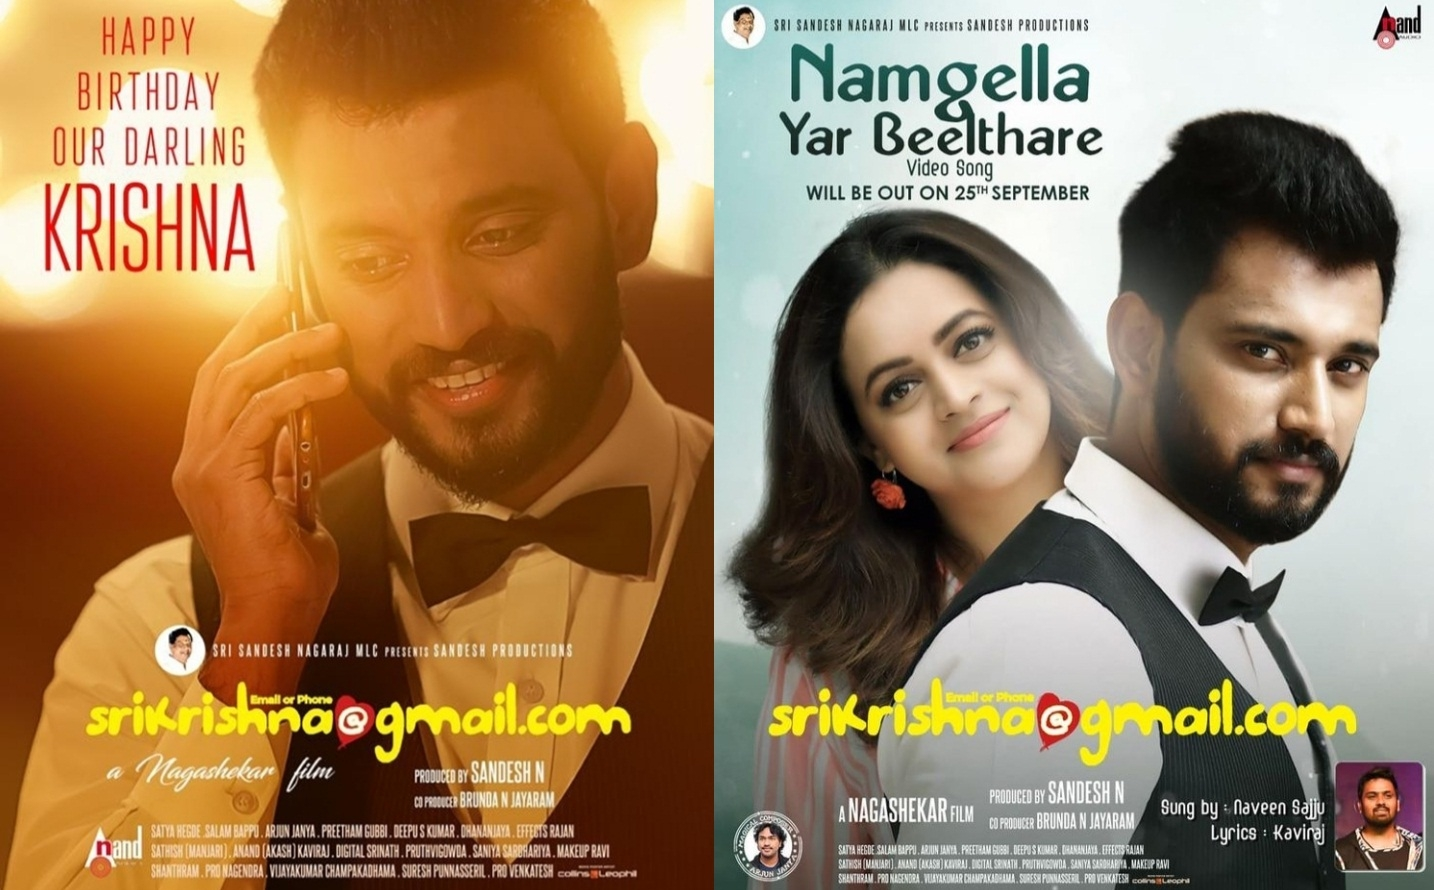 'SriKrishna@gmail.com' to compete with 2 big releases in K'taka